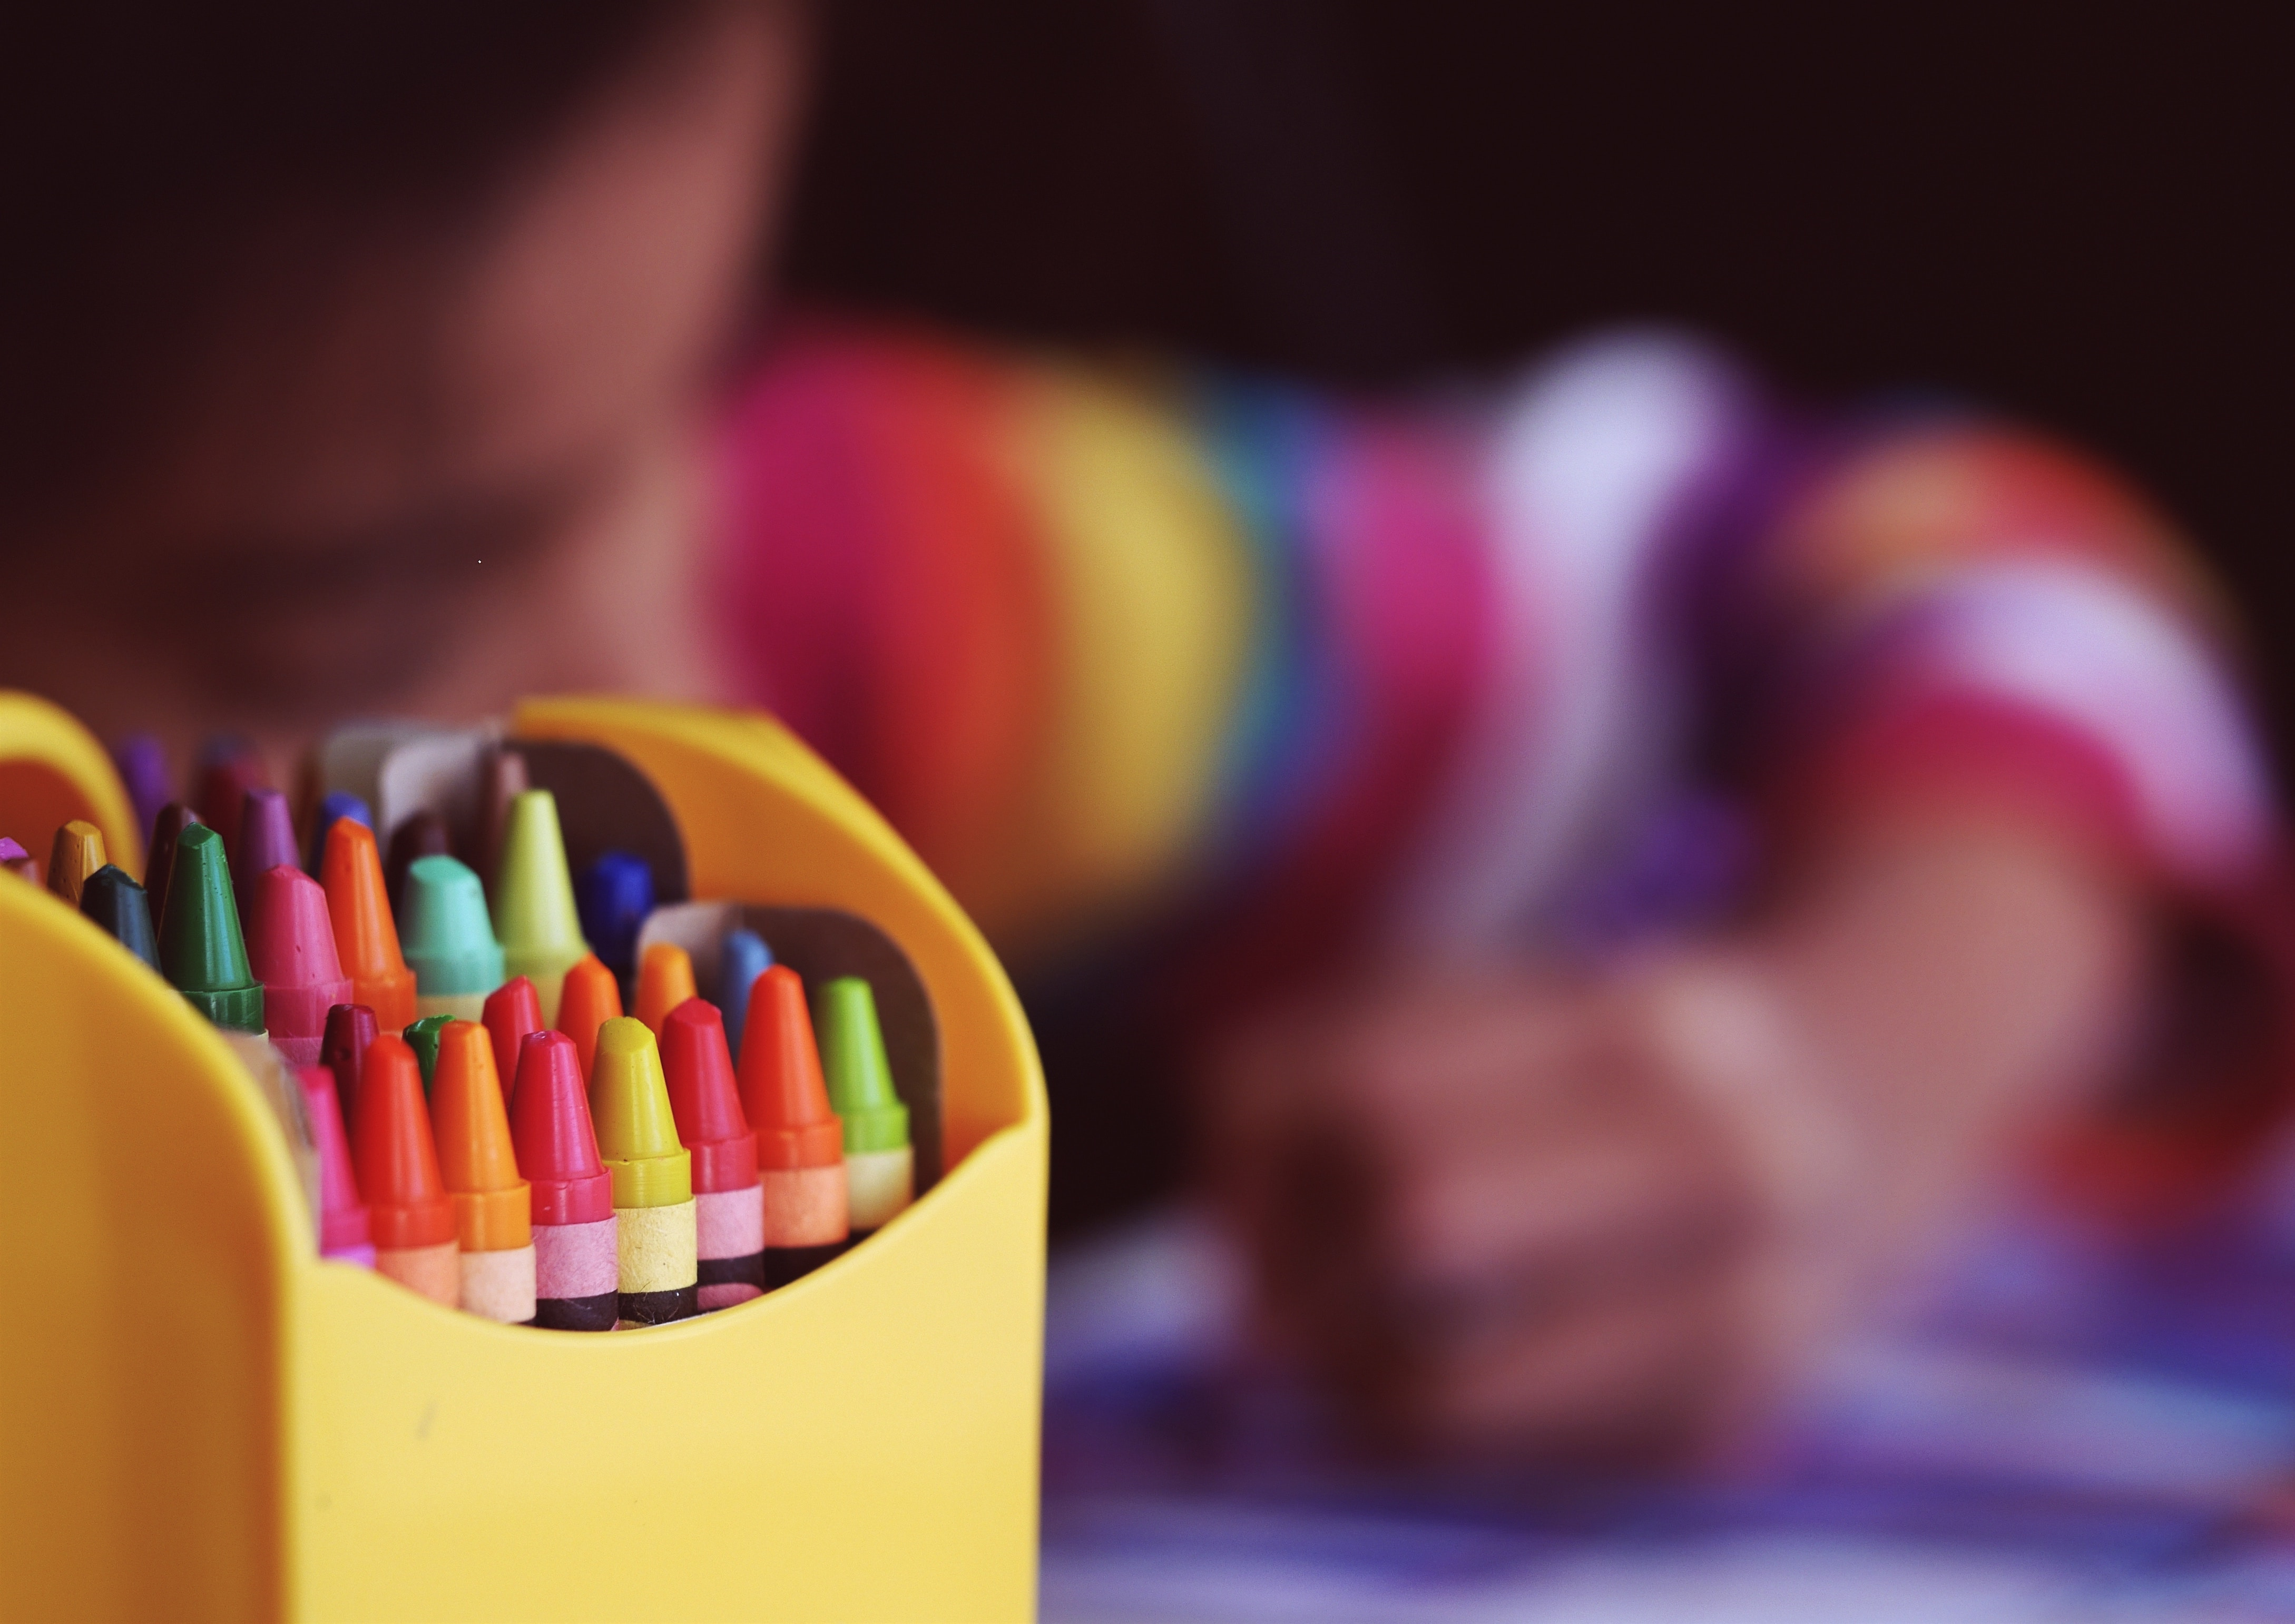 Colouring crayons and child drawing